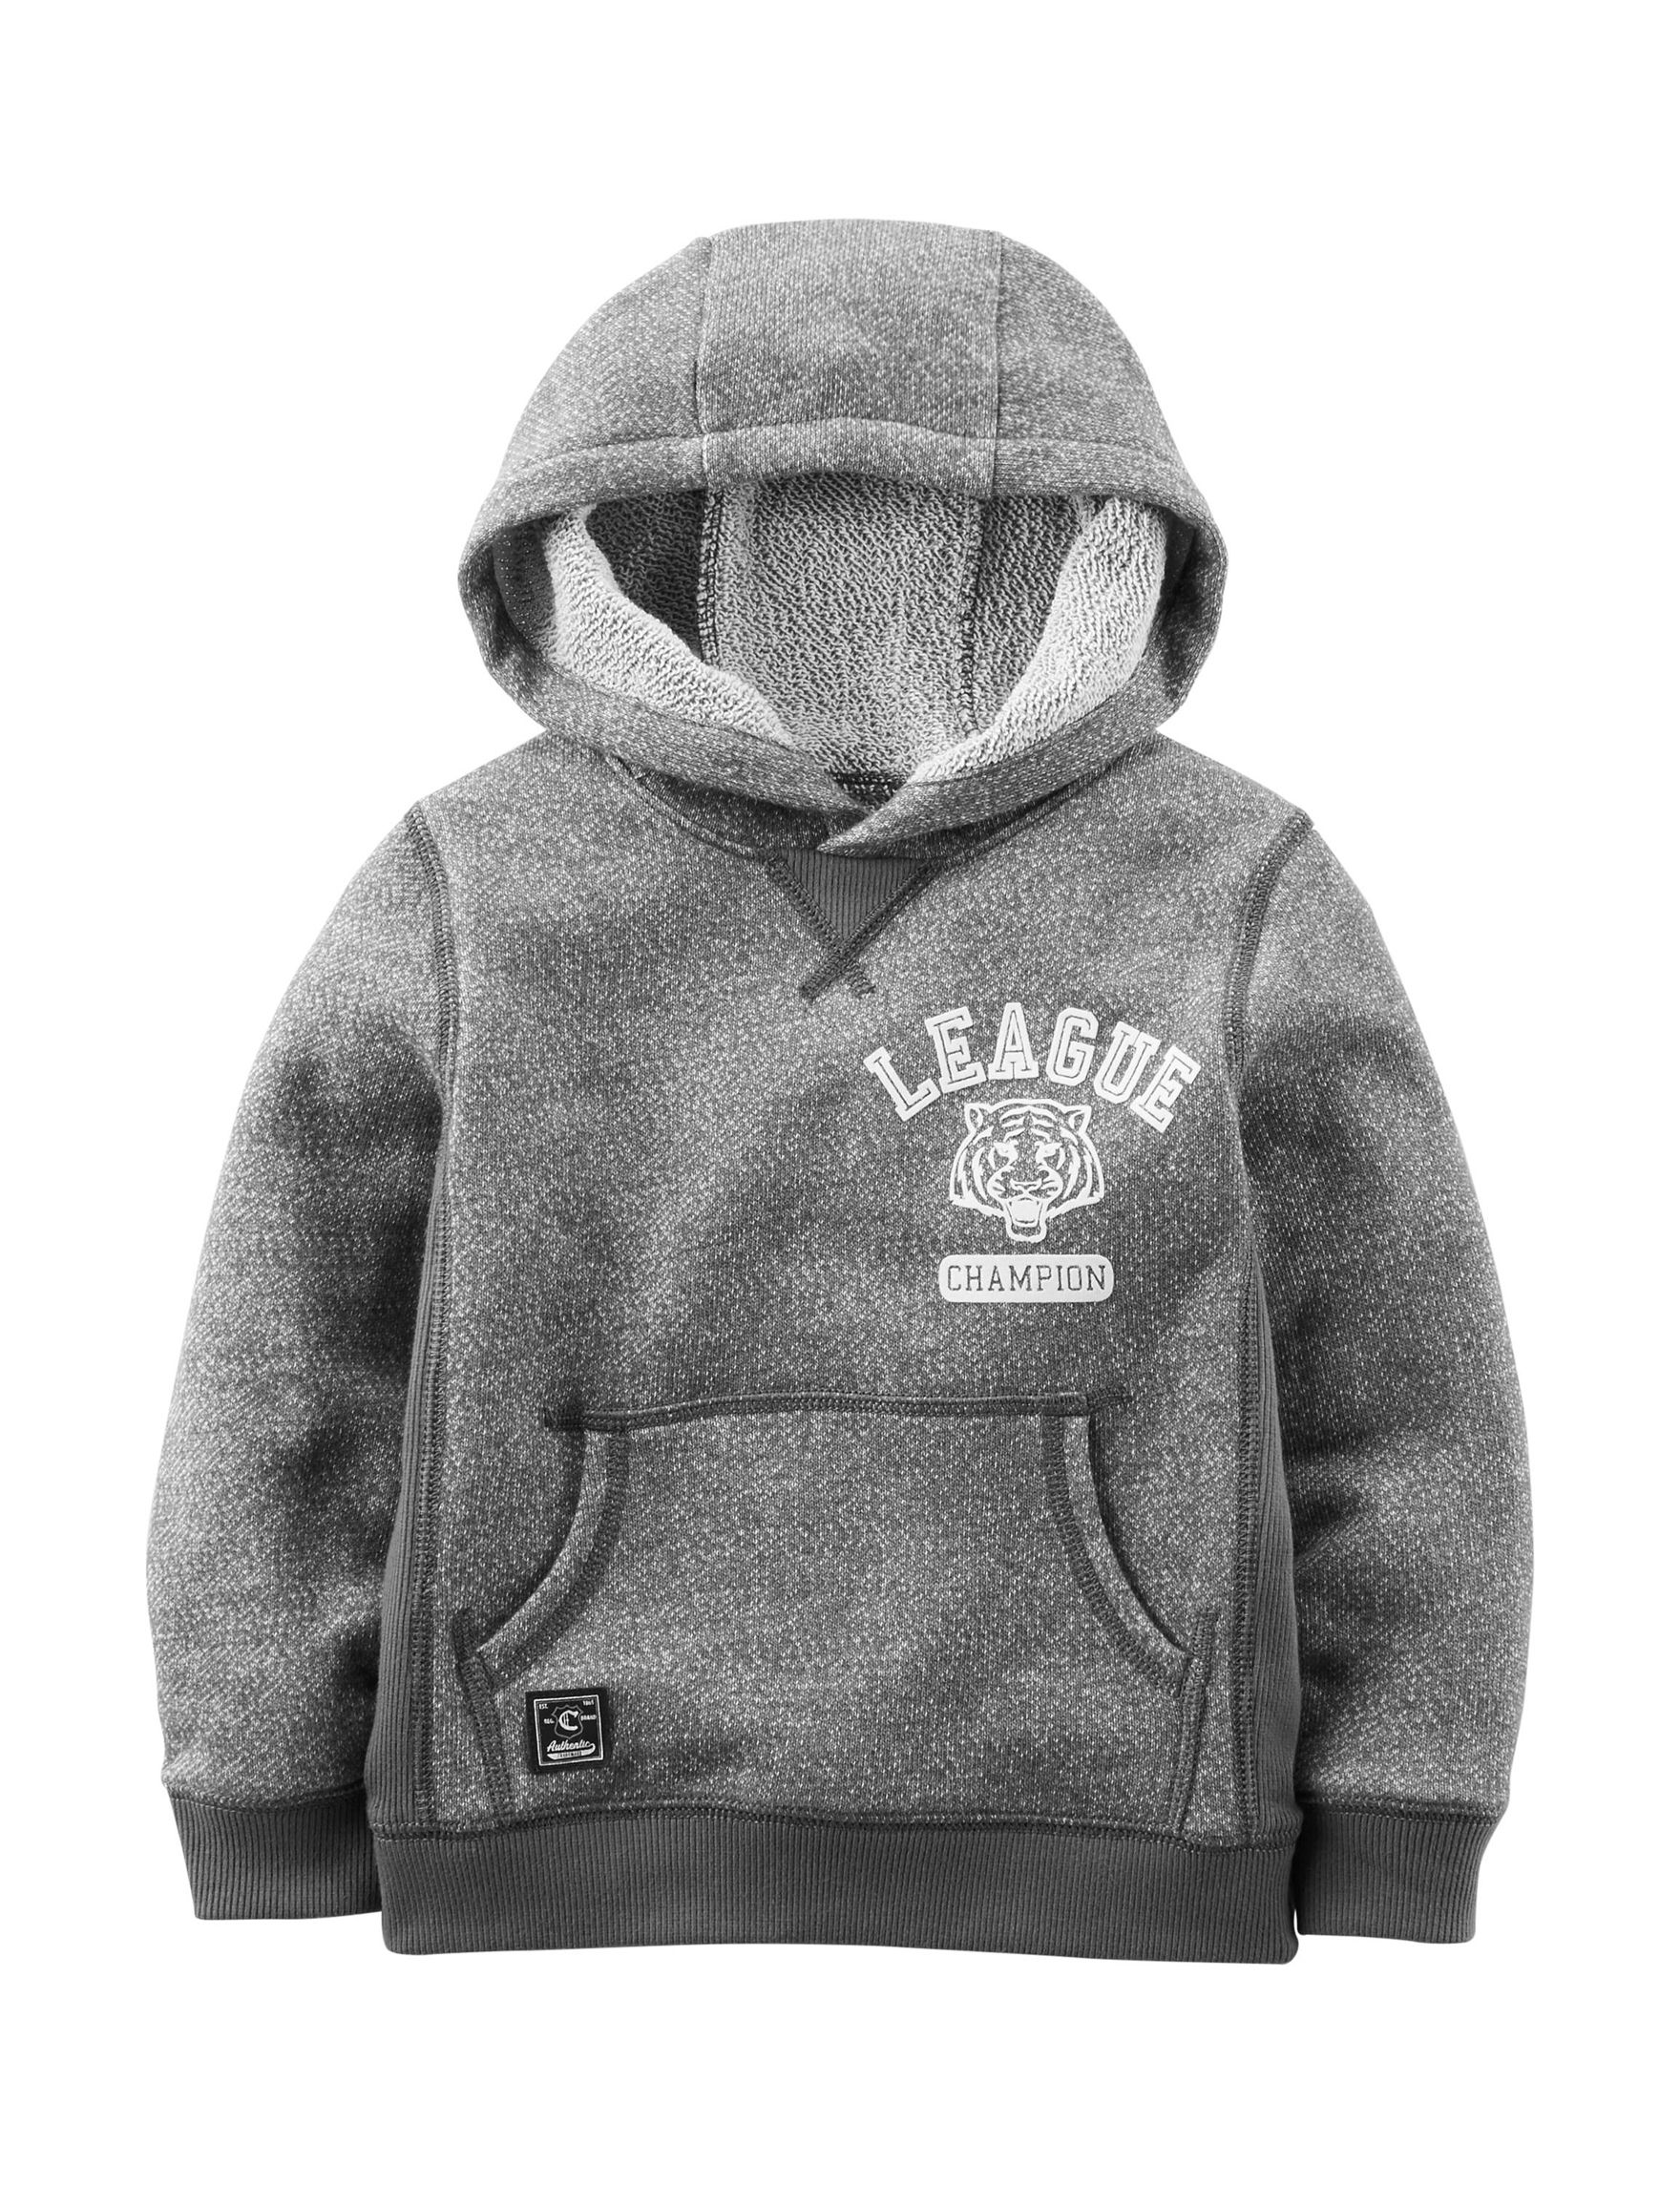 Carter's Grey Pull-overs